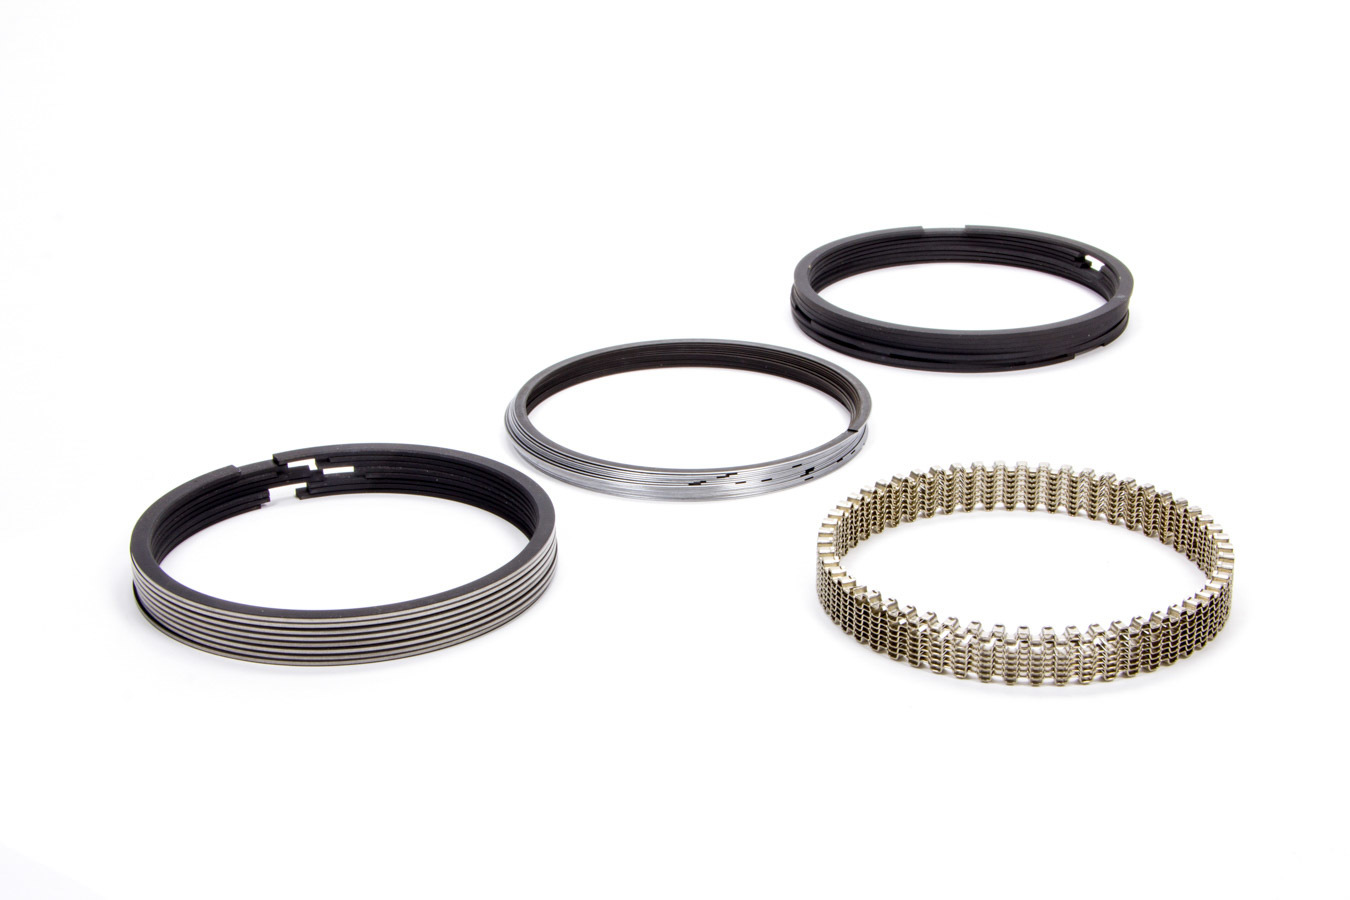 Hastings CM5521030 Piston Rings, Claimer, 4.030 in Bore, 1/16 x 1/16 x 1/8 in Thick, Standard Tension, Plasma Moly, 8 Cylinder, Kit